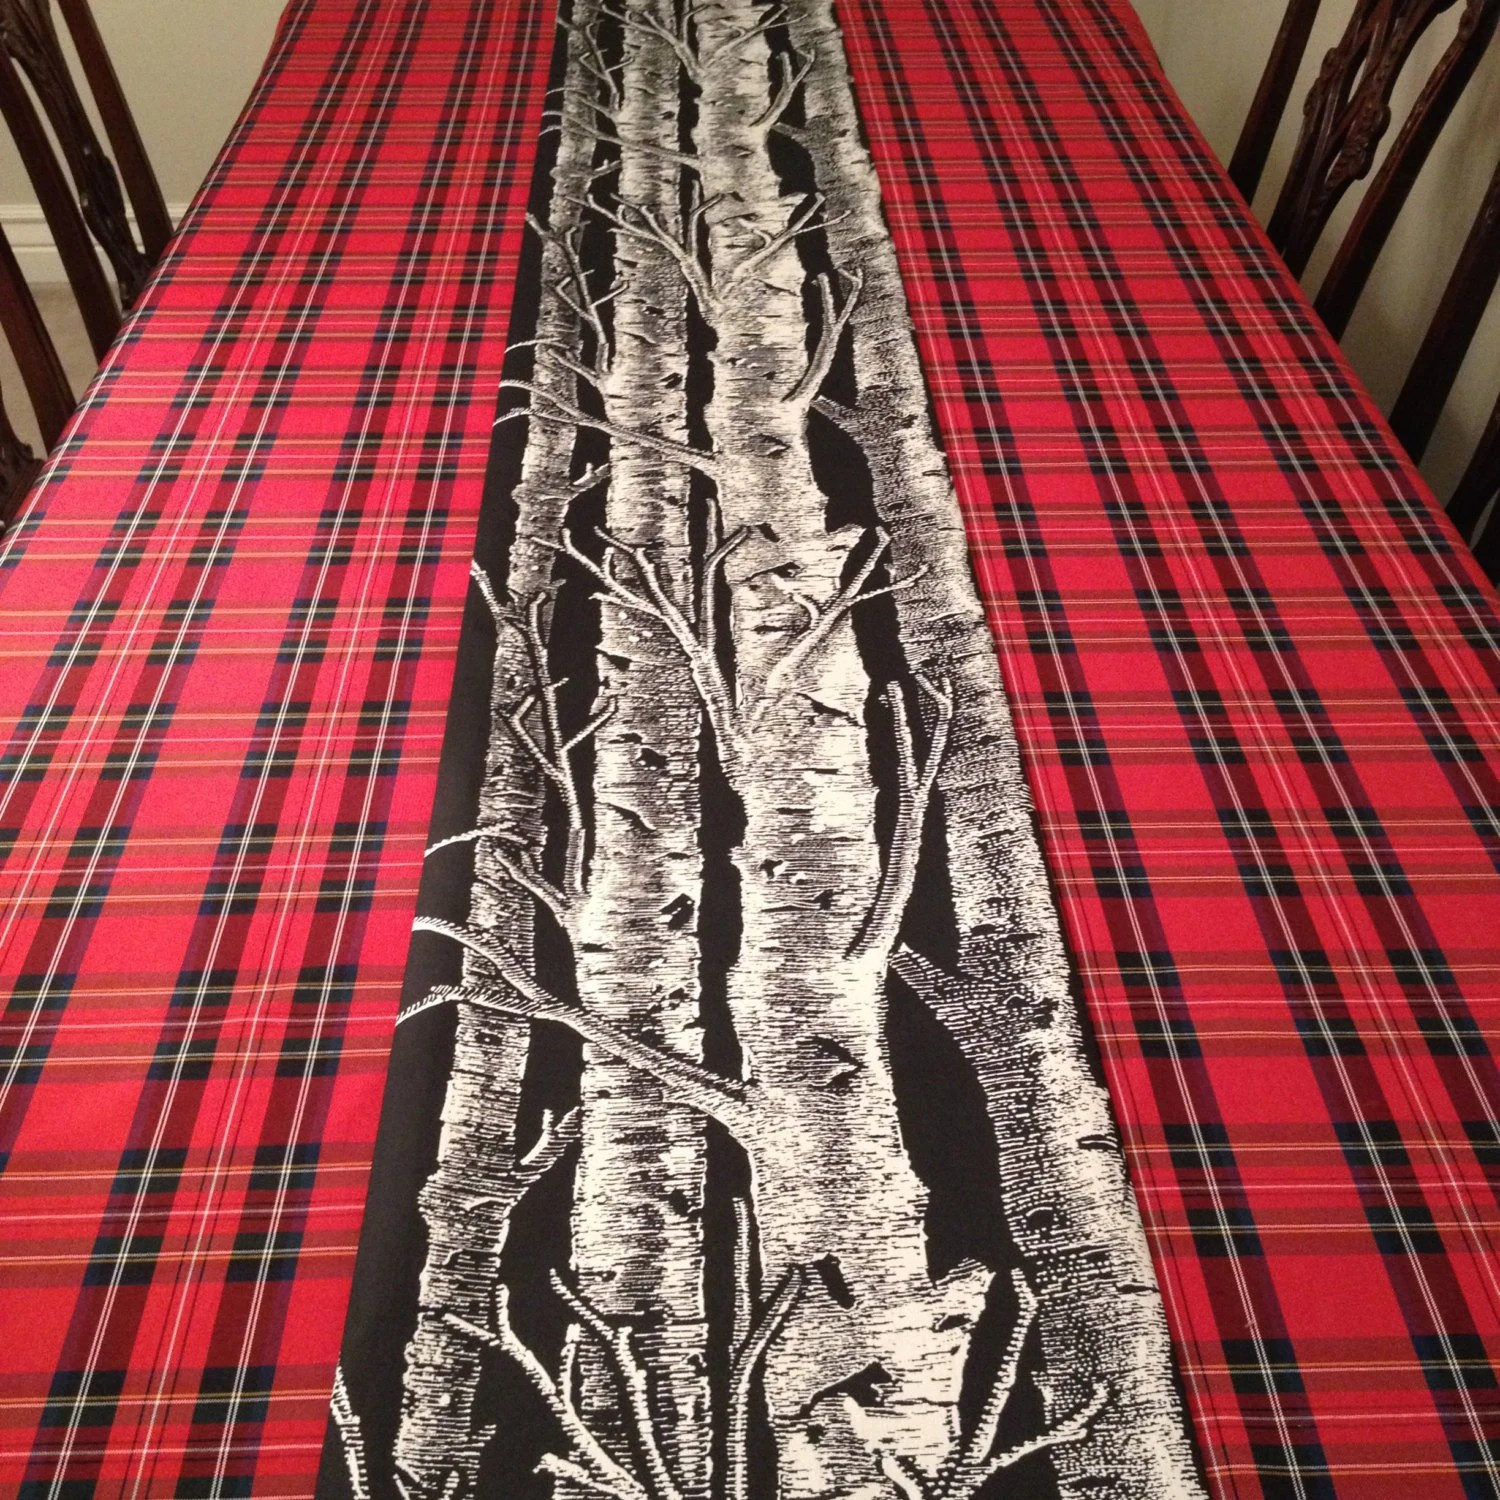 Christmas Tablecloths Australia Red Tartan Plaid Tablecloth Christmas Tablecloth Christmas Plaid Tablecloth Stewart Plaid Tablecloth Holiday Tablecloth Tartan Linens